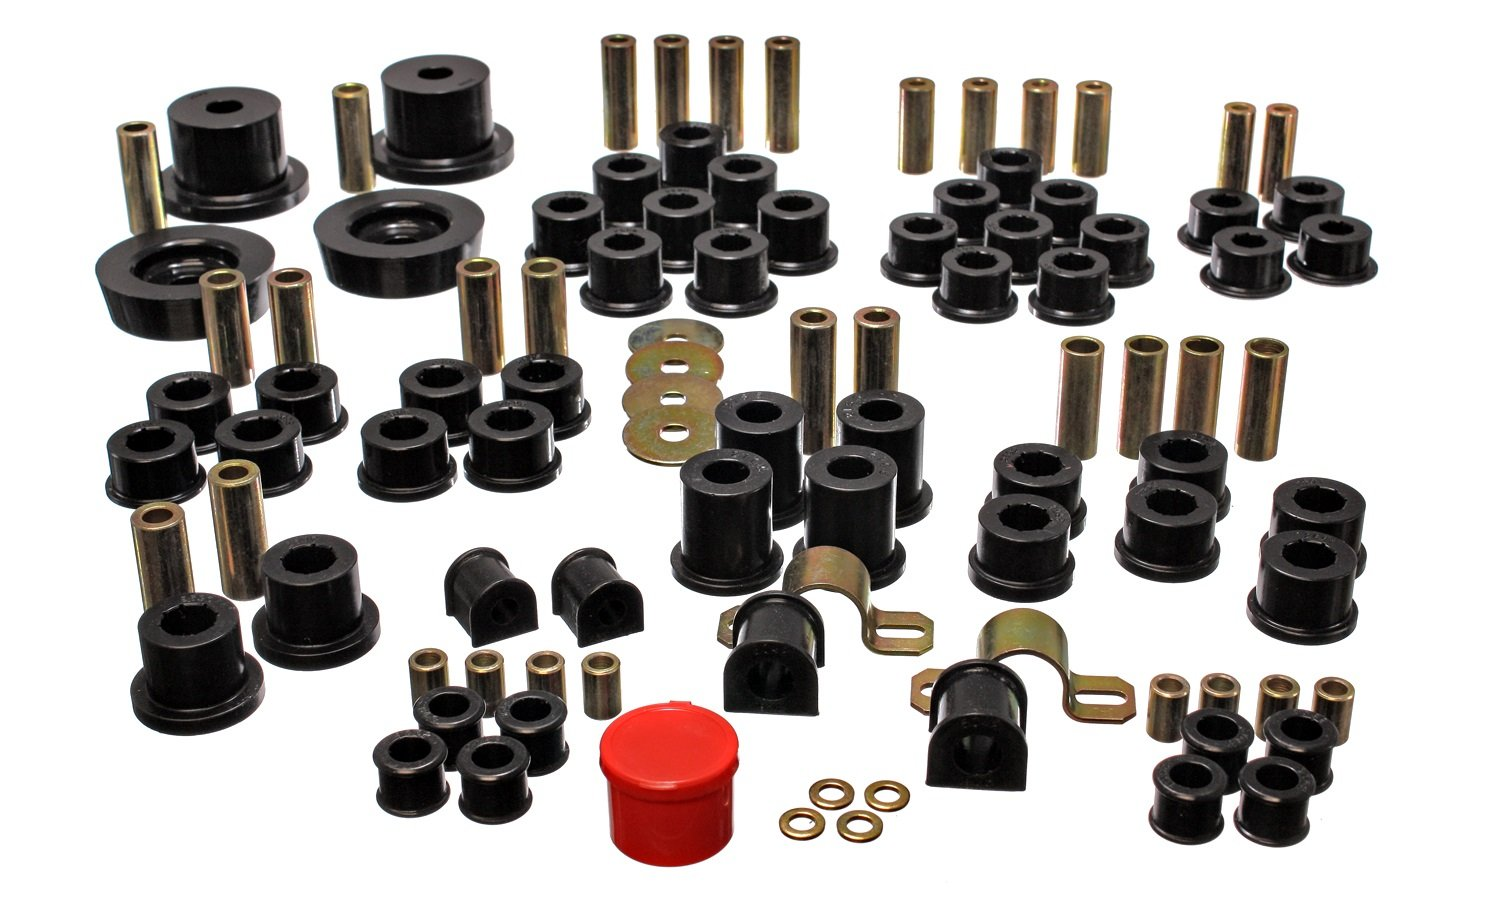 Energy Suspension 1118102G HyperFlex Master Kit for Mazda Miata by Energy Suspension (Image #1)